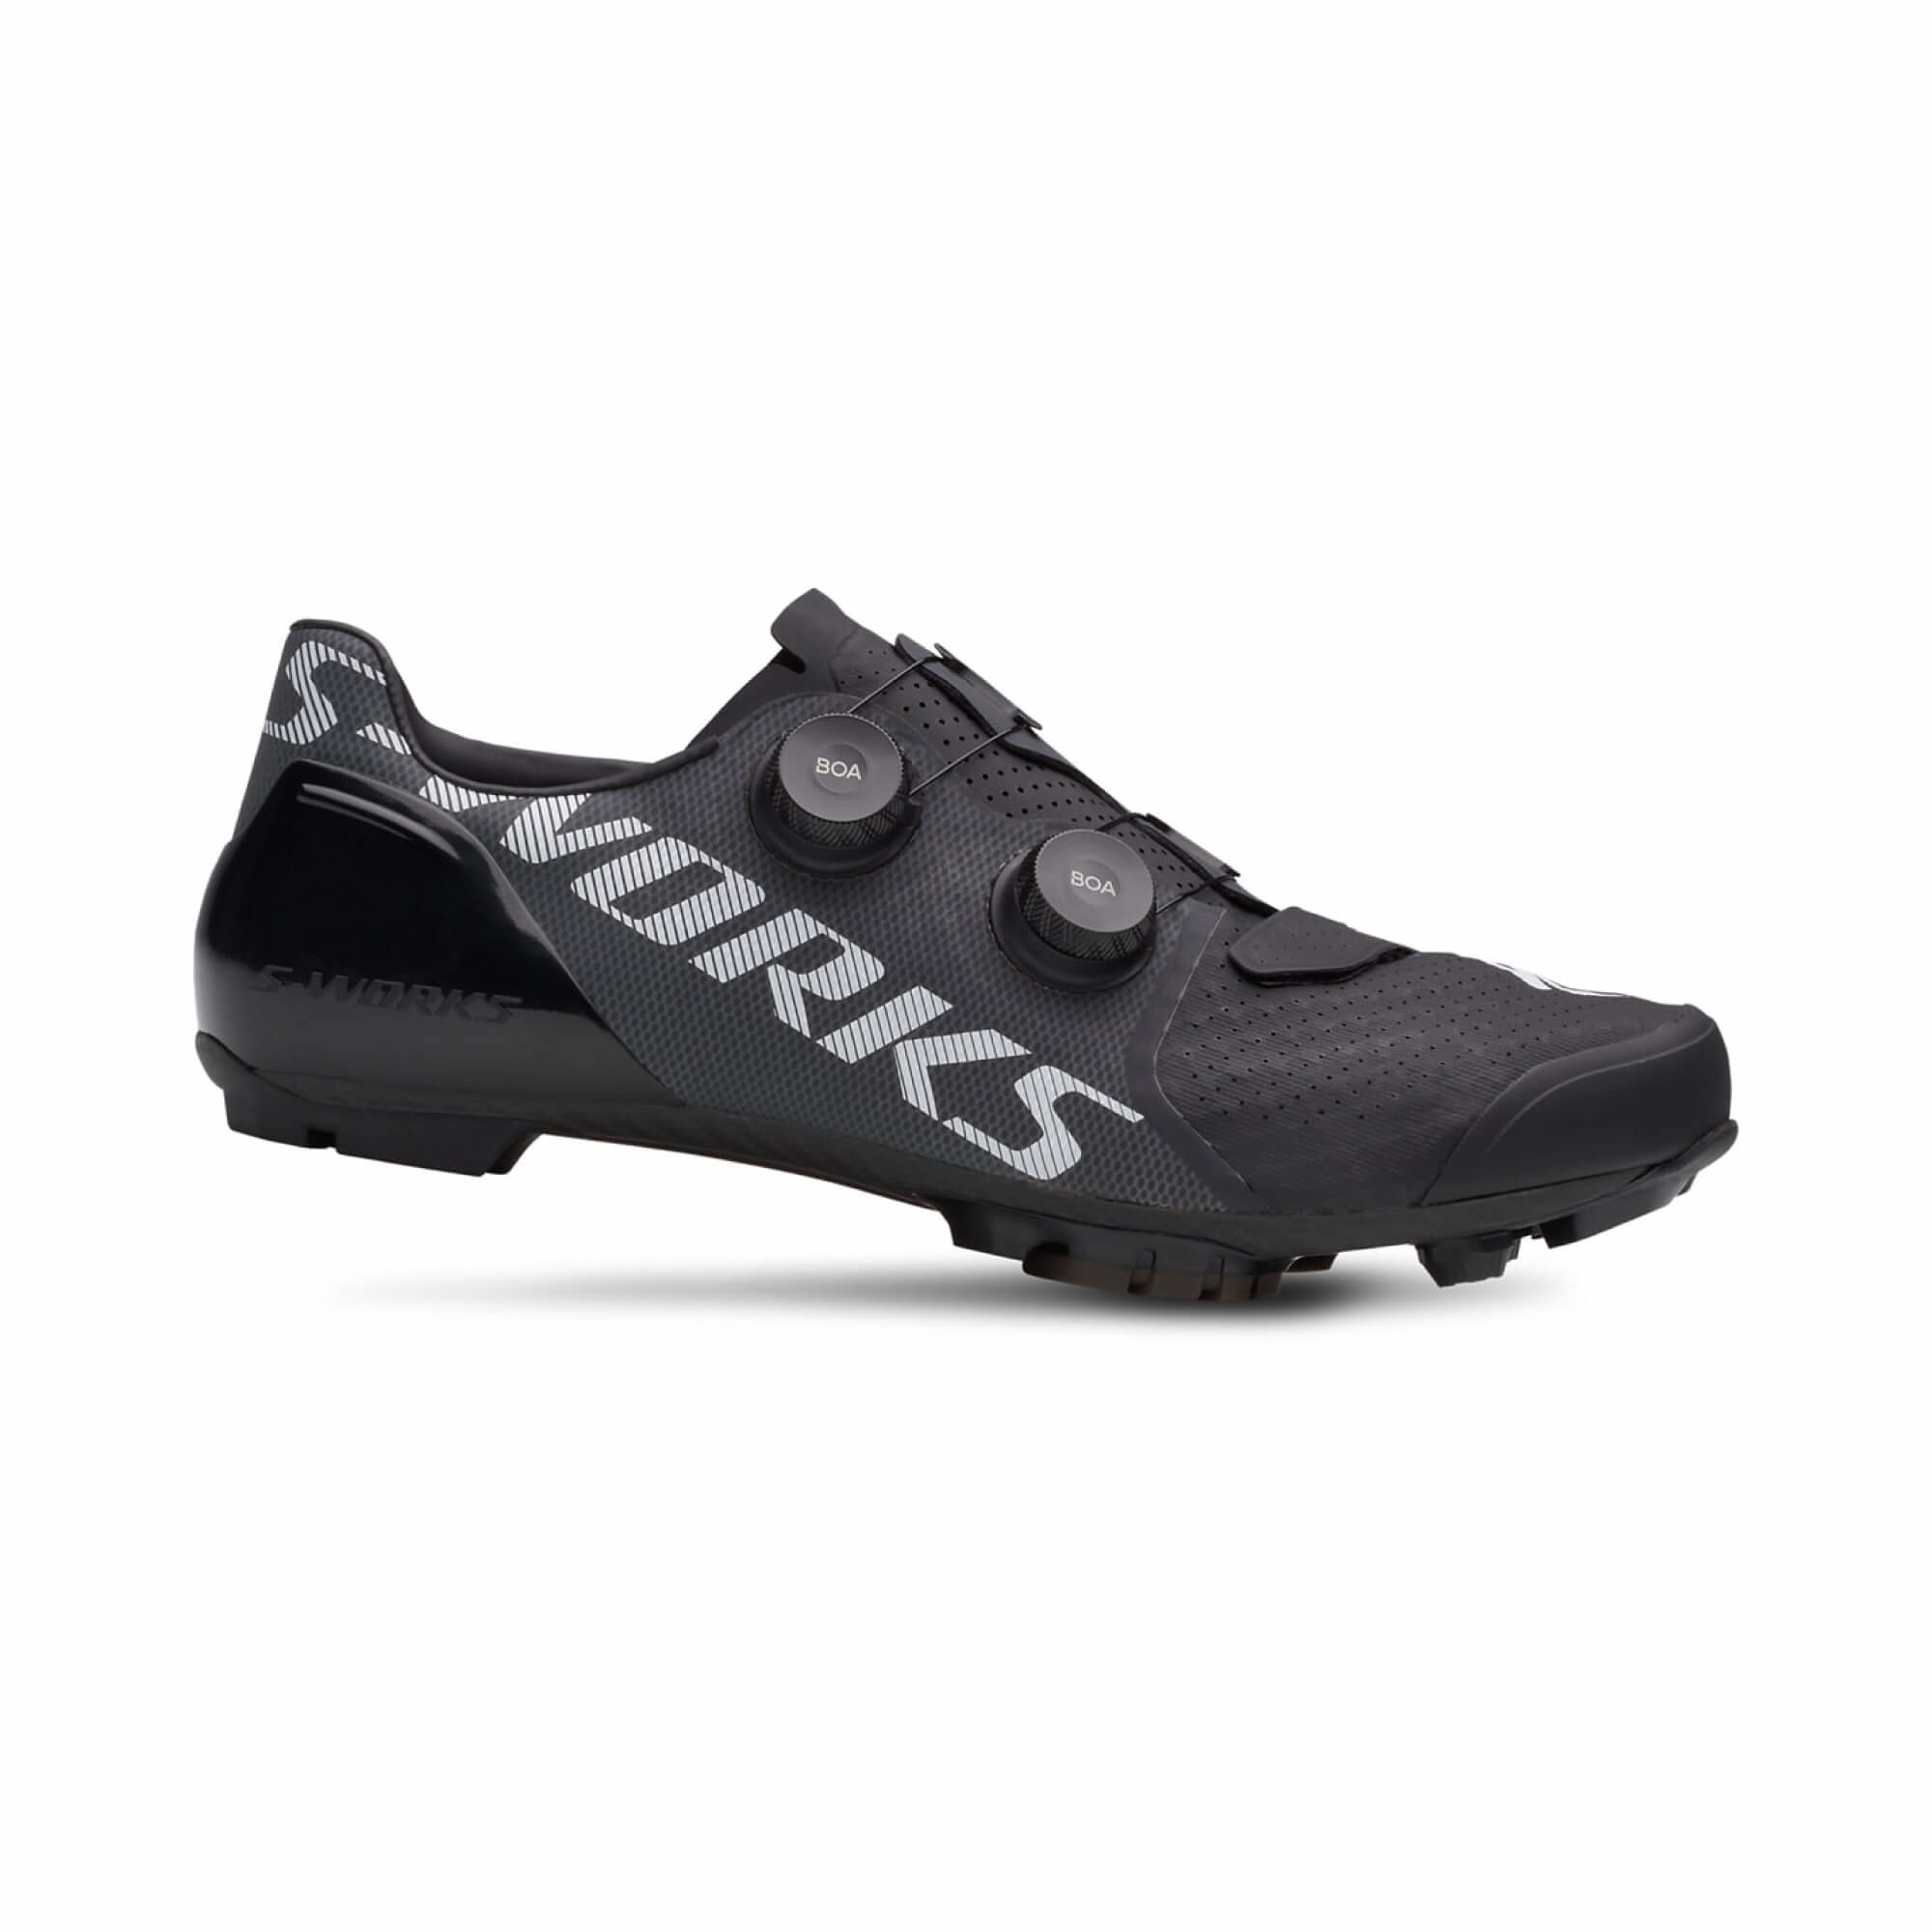 S-Works Recon Shoe-5